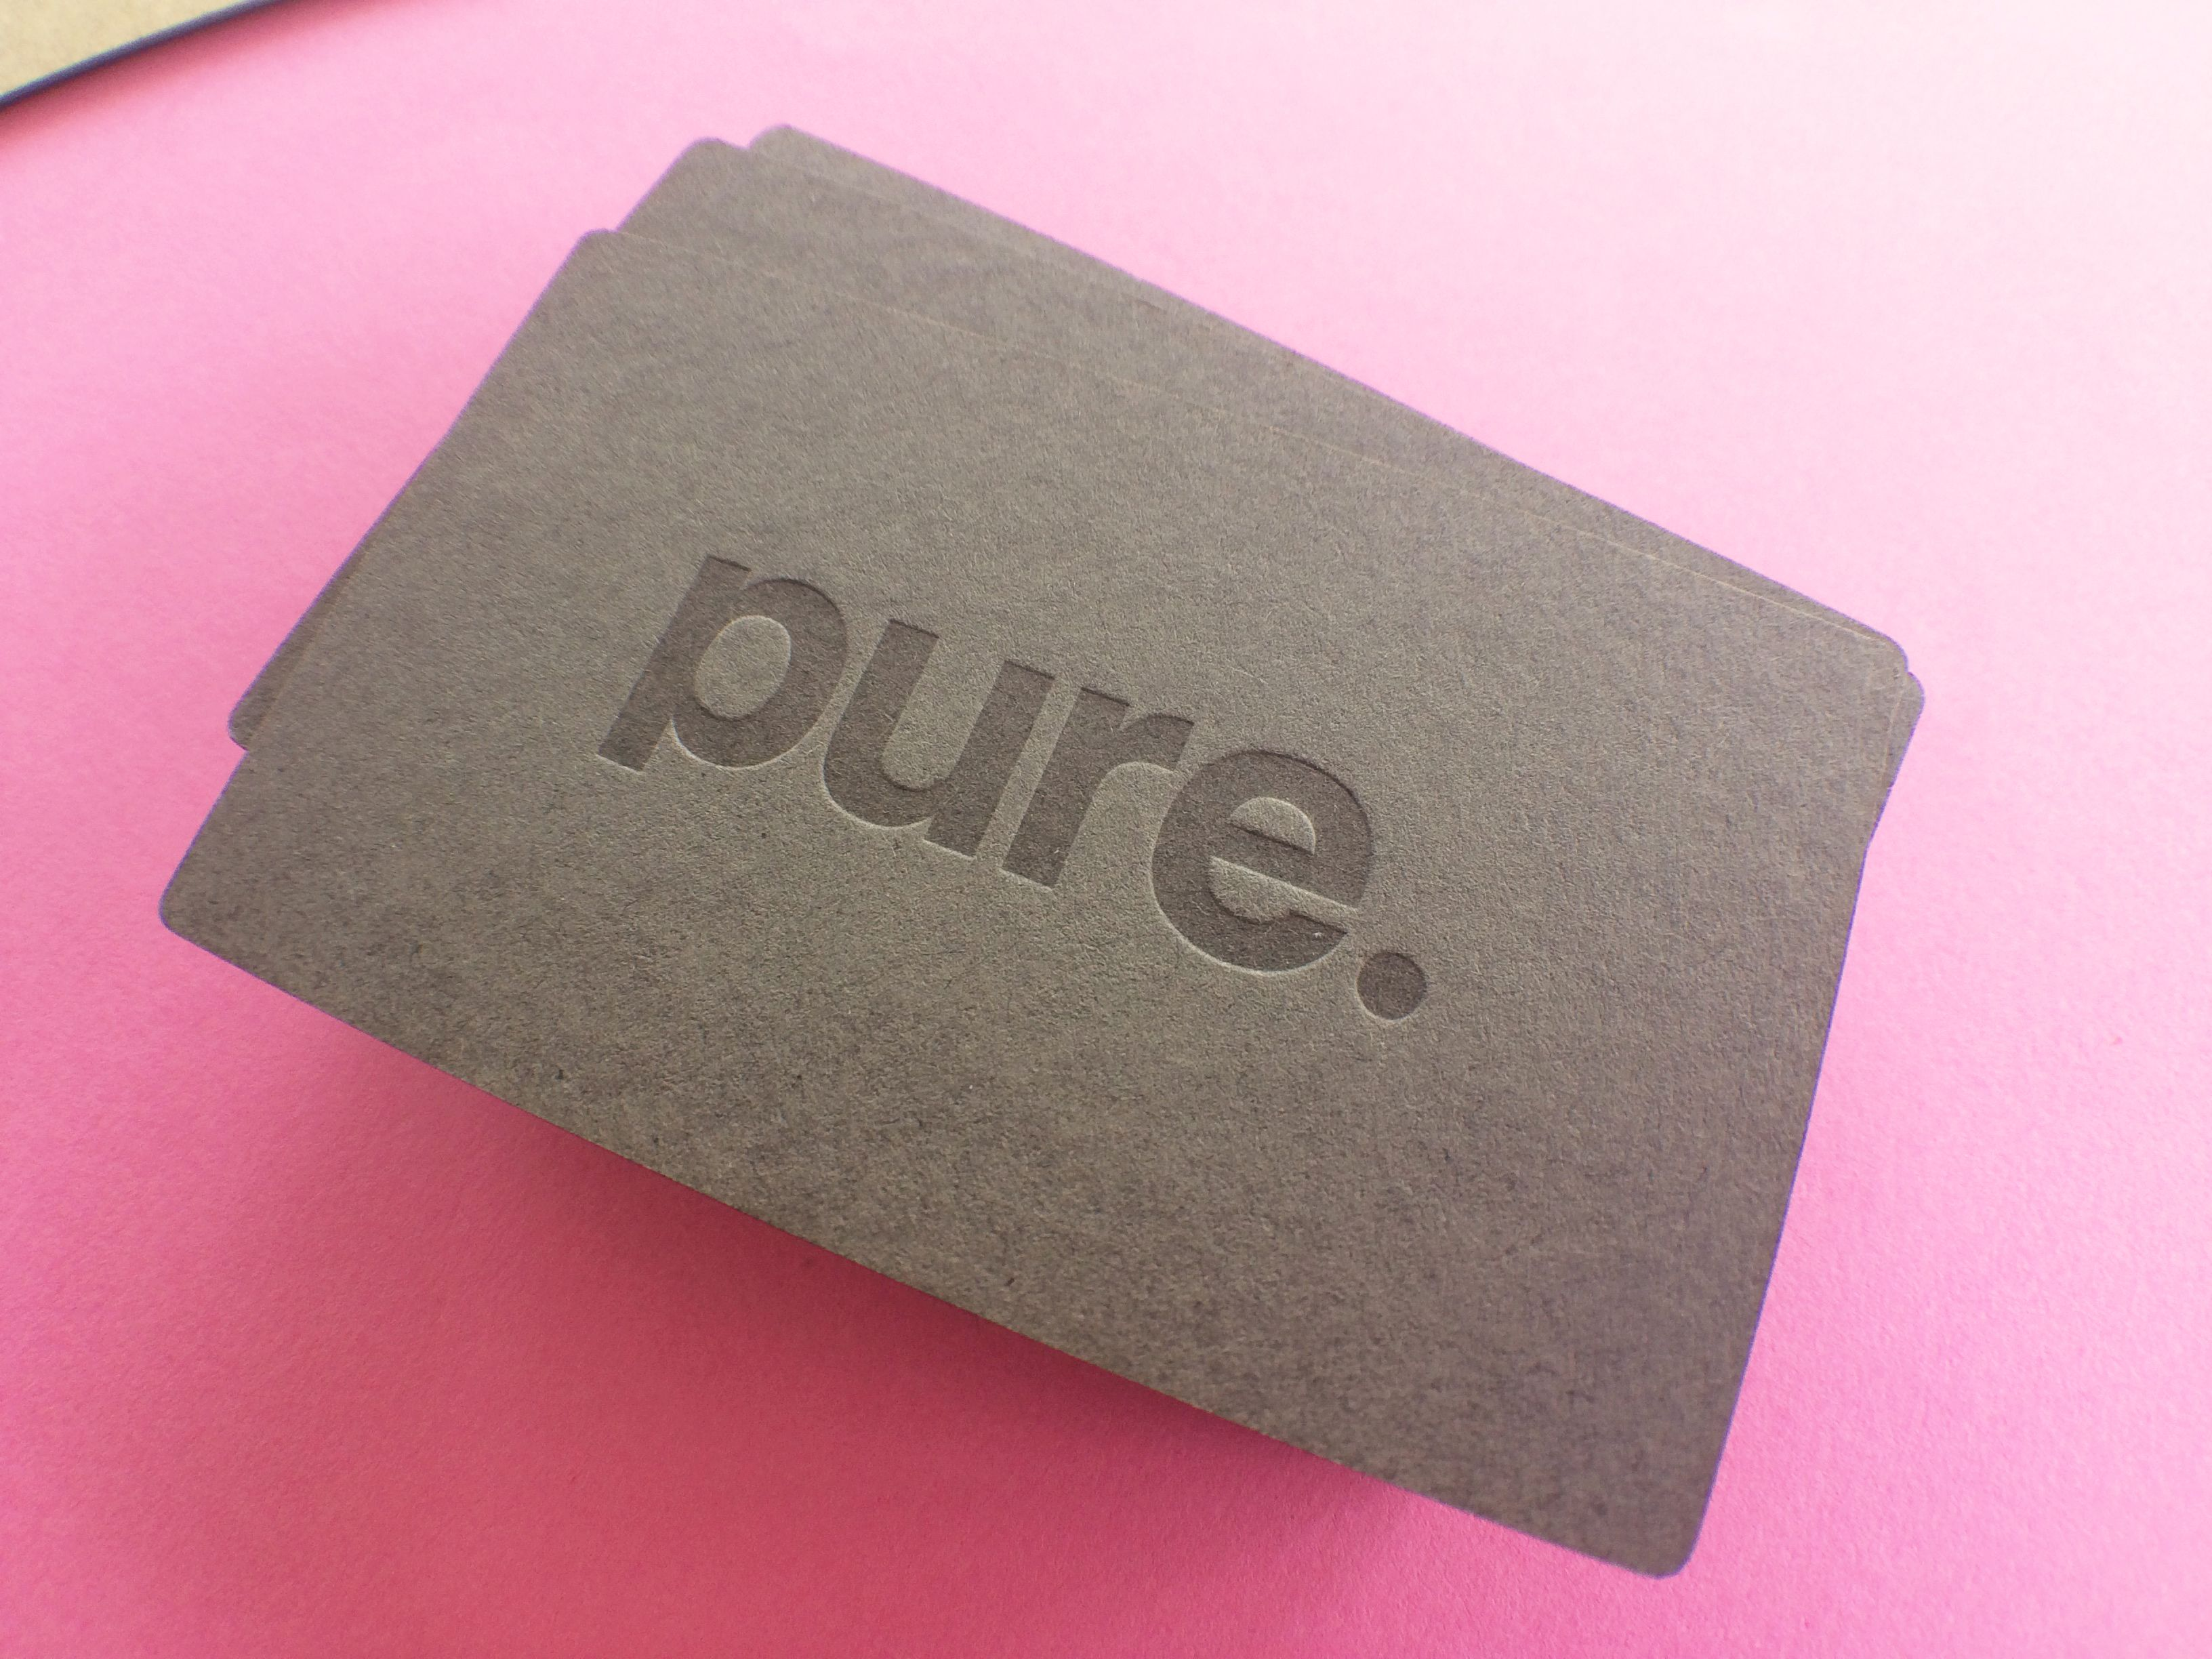 Letterpress business cards printed for Pure Interiors, Sydney ...